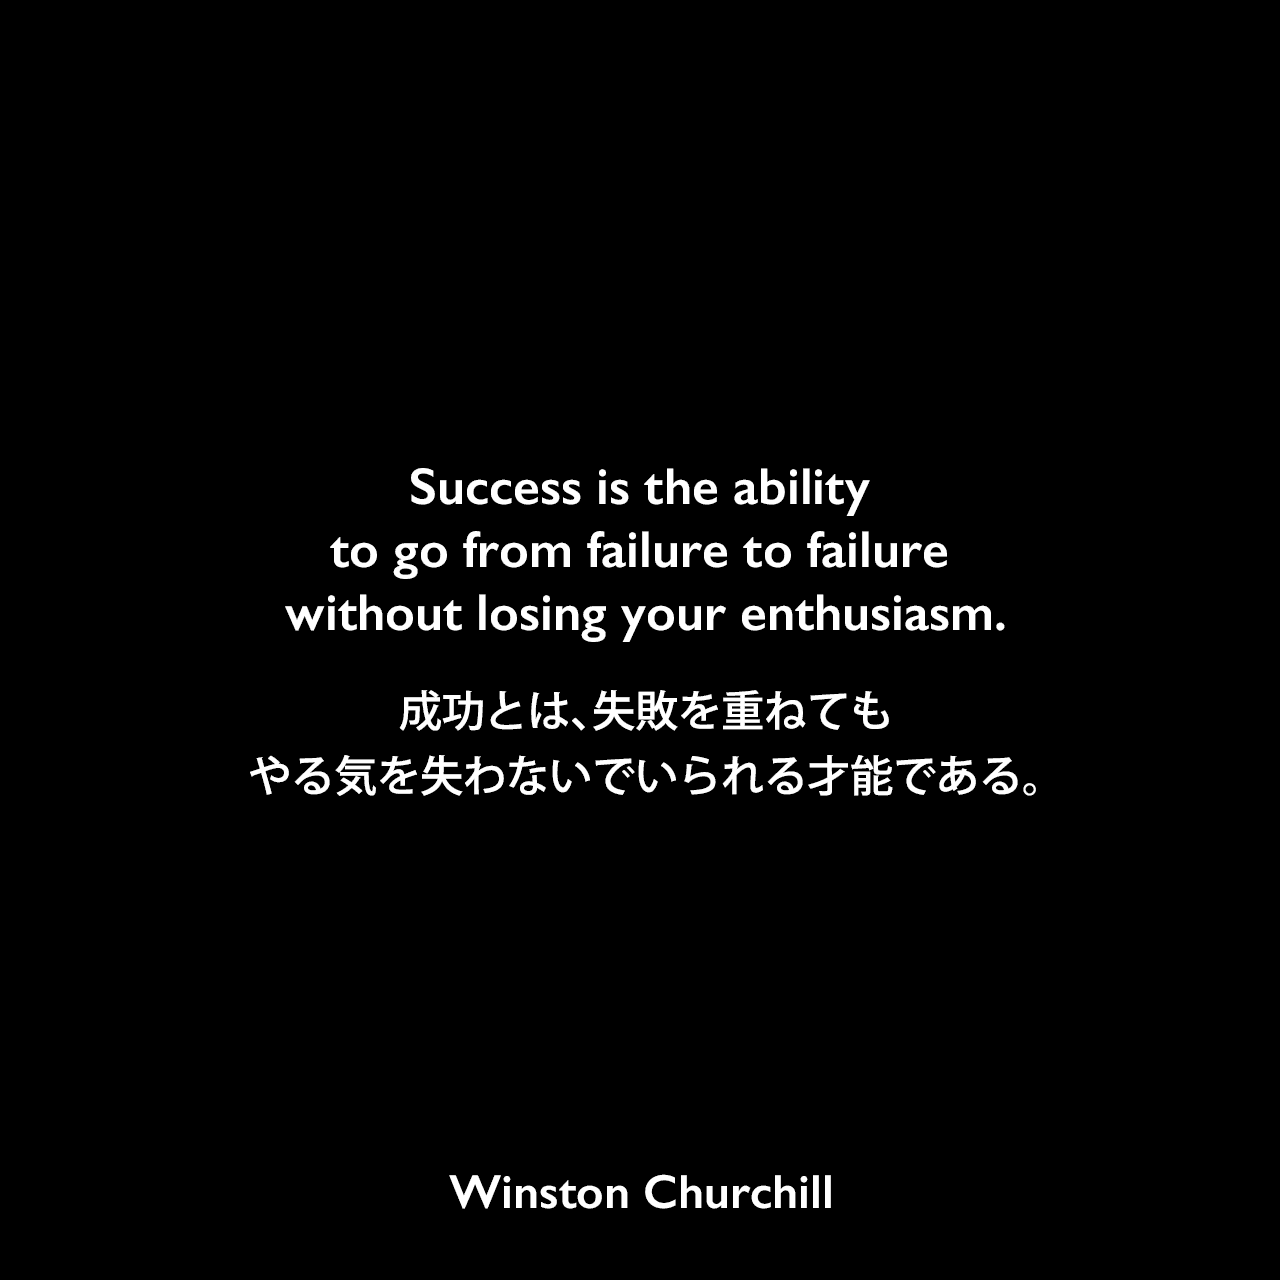 Success is the ability to go from failure to failure without losing your enthusiasm.成功とは、失敗を重ねても、やる気を失わないでいられる才能である。Winston Churchill